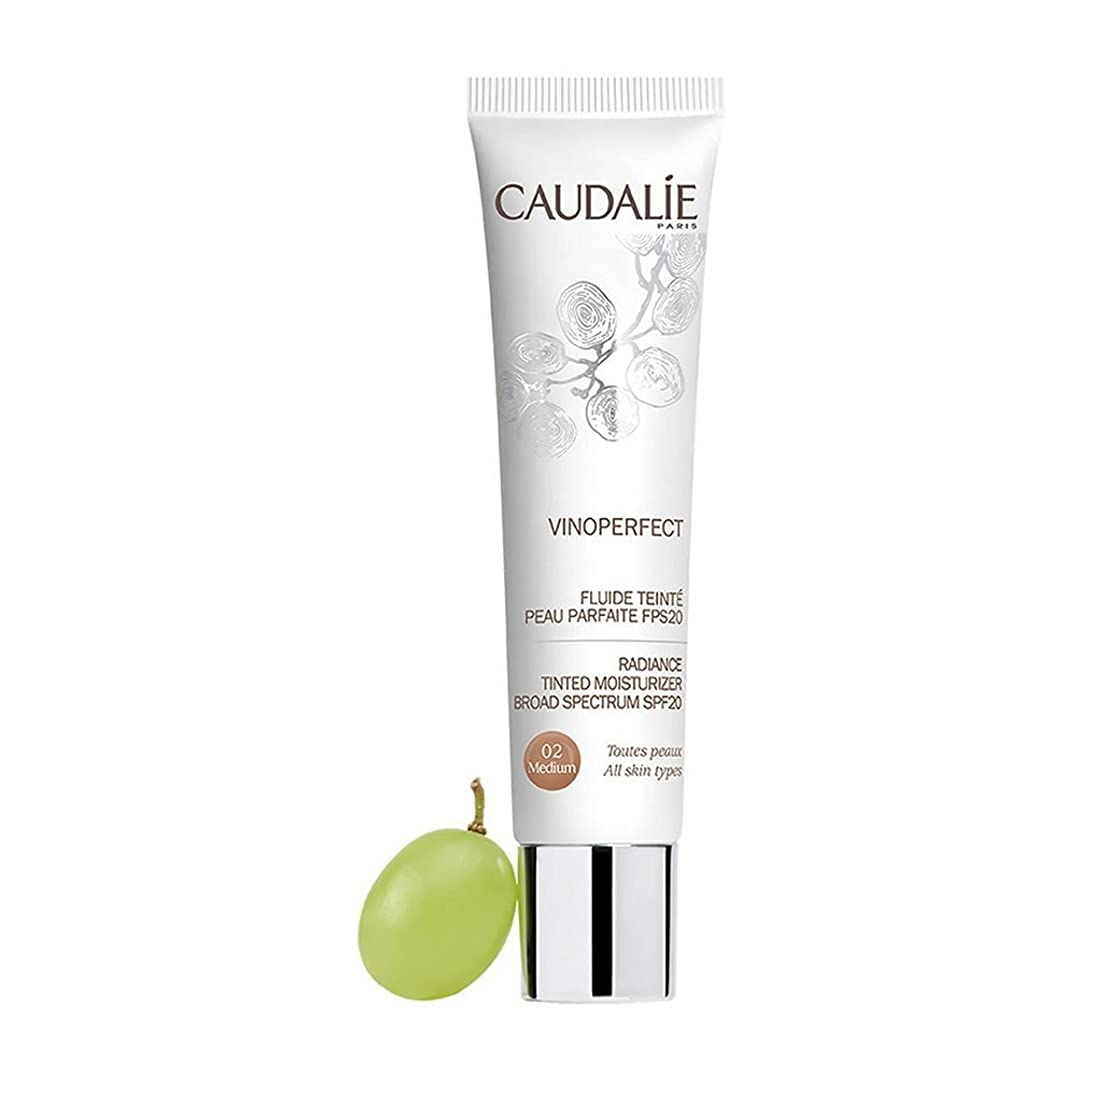 上に築きますきれいにインタネットを見るCaudalie Vinoperfect Radiance Tinted Moisturizer Broad Spectrum Spf20 Medium 40ml [並行輸入品]